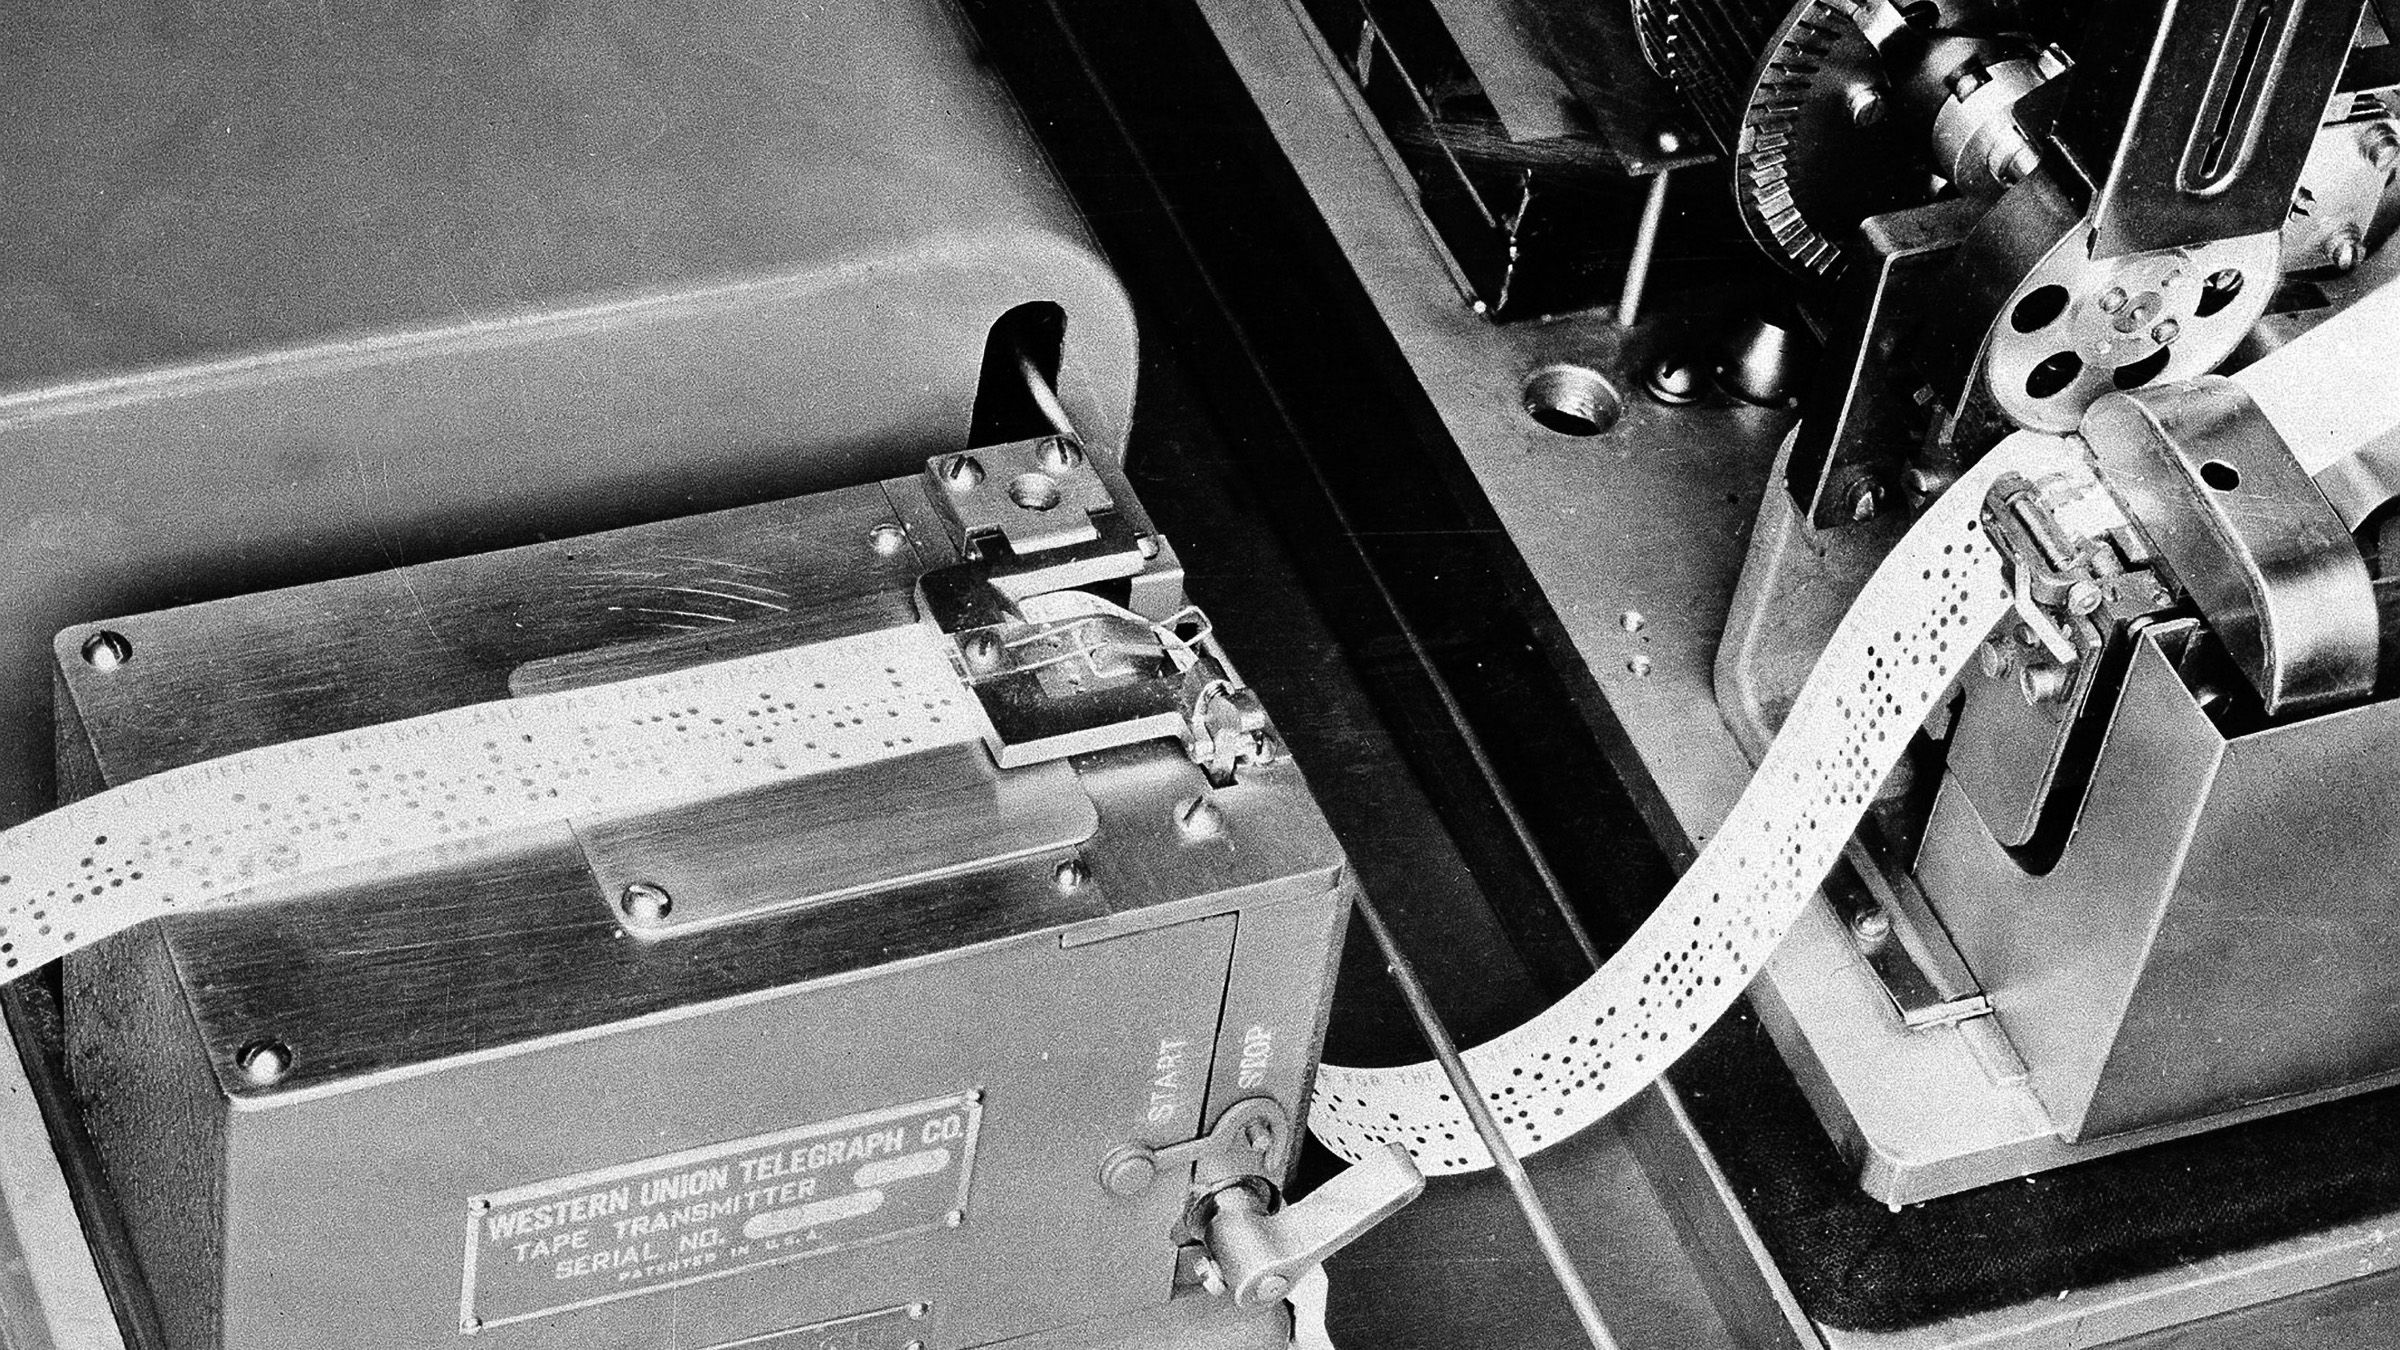 This is the current device used by Western Union which translates a telegram into holes on a tape, and then passes it along to the box-like apparatus at upper left, seen May 16, 1944.